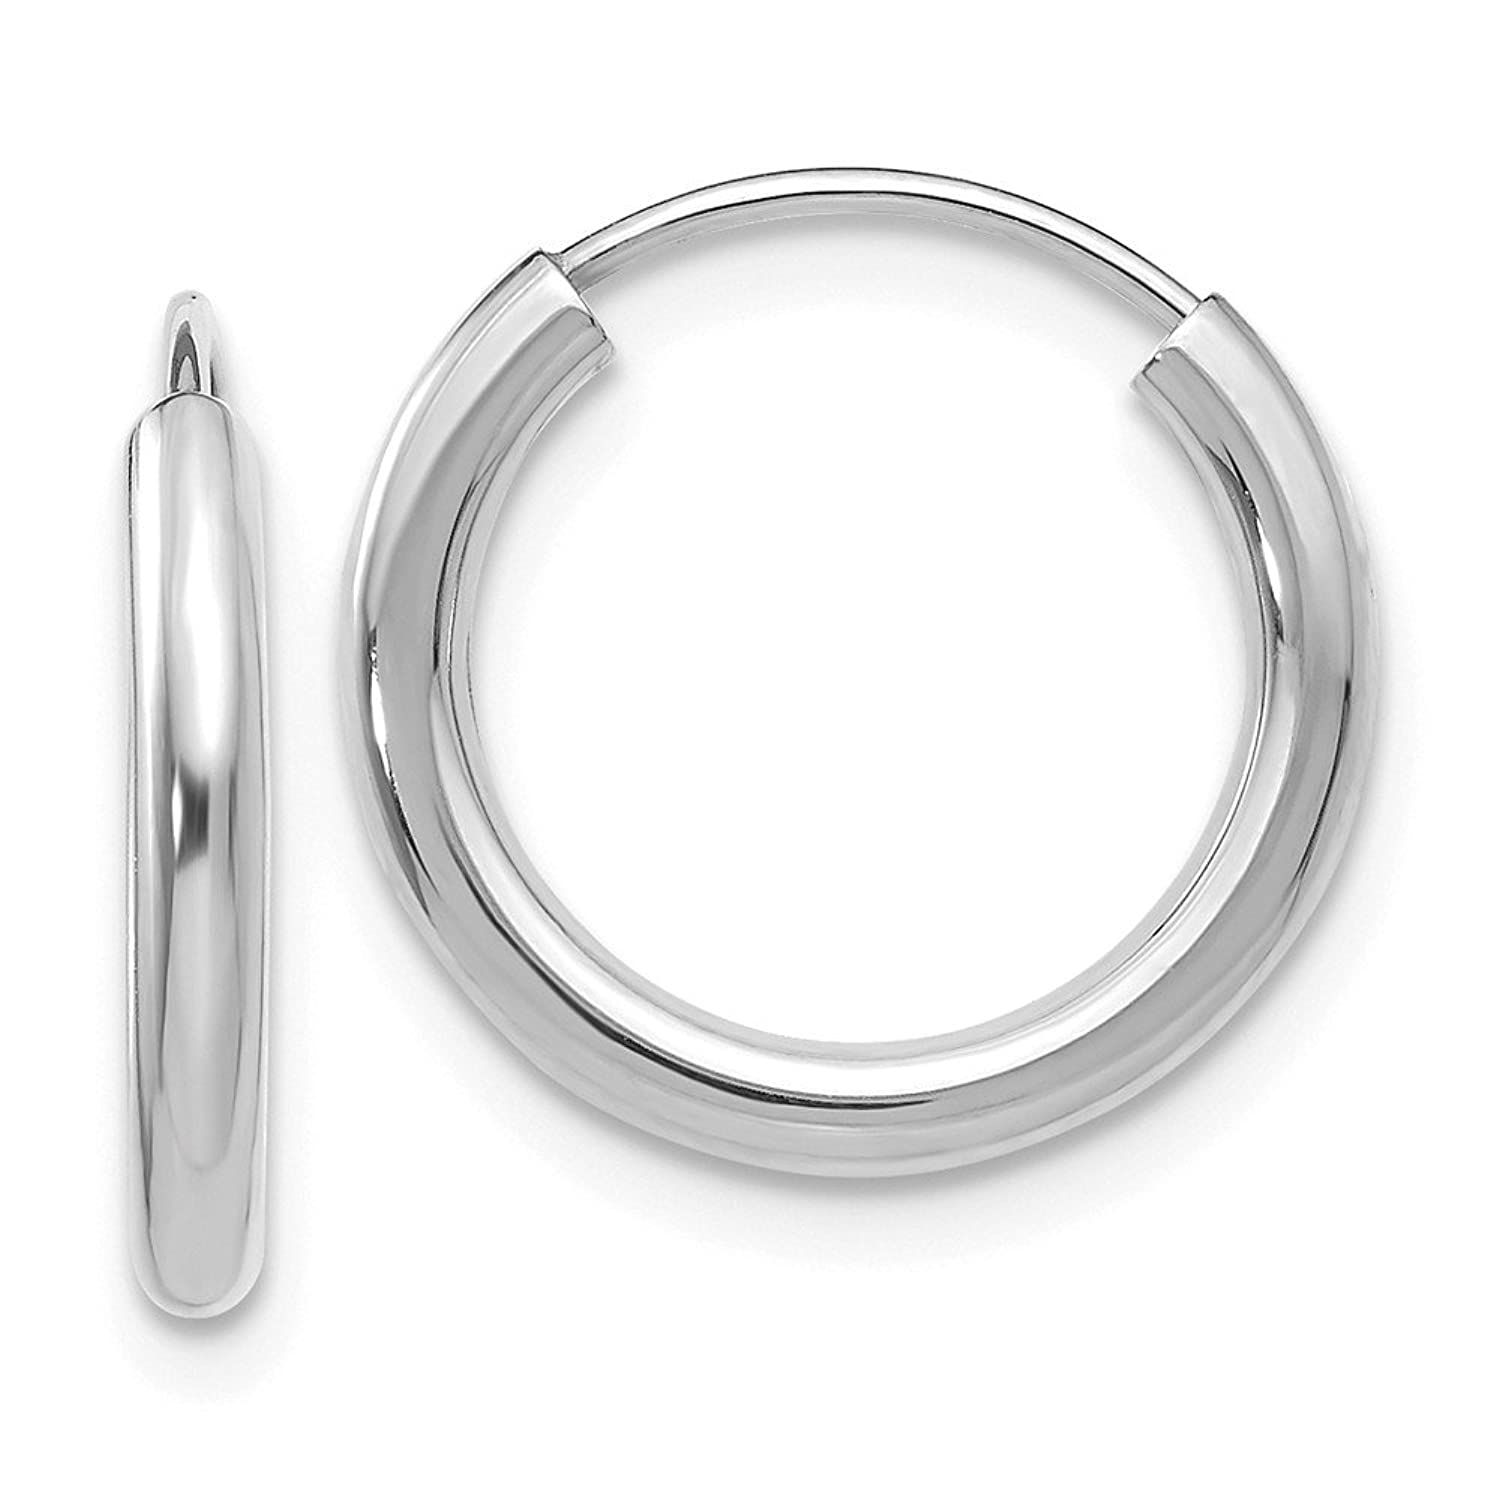 14kt White Gold Polished Endless 2mm Hoop Earrings